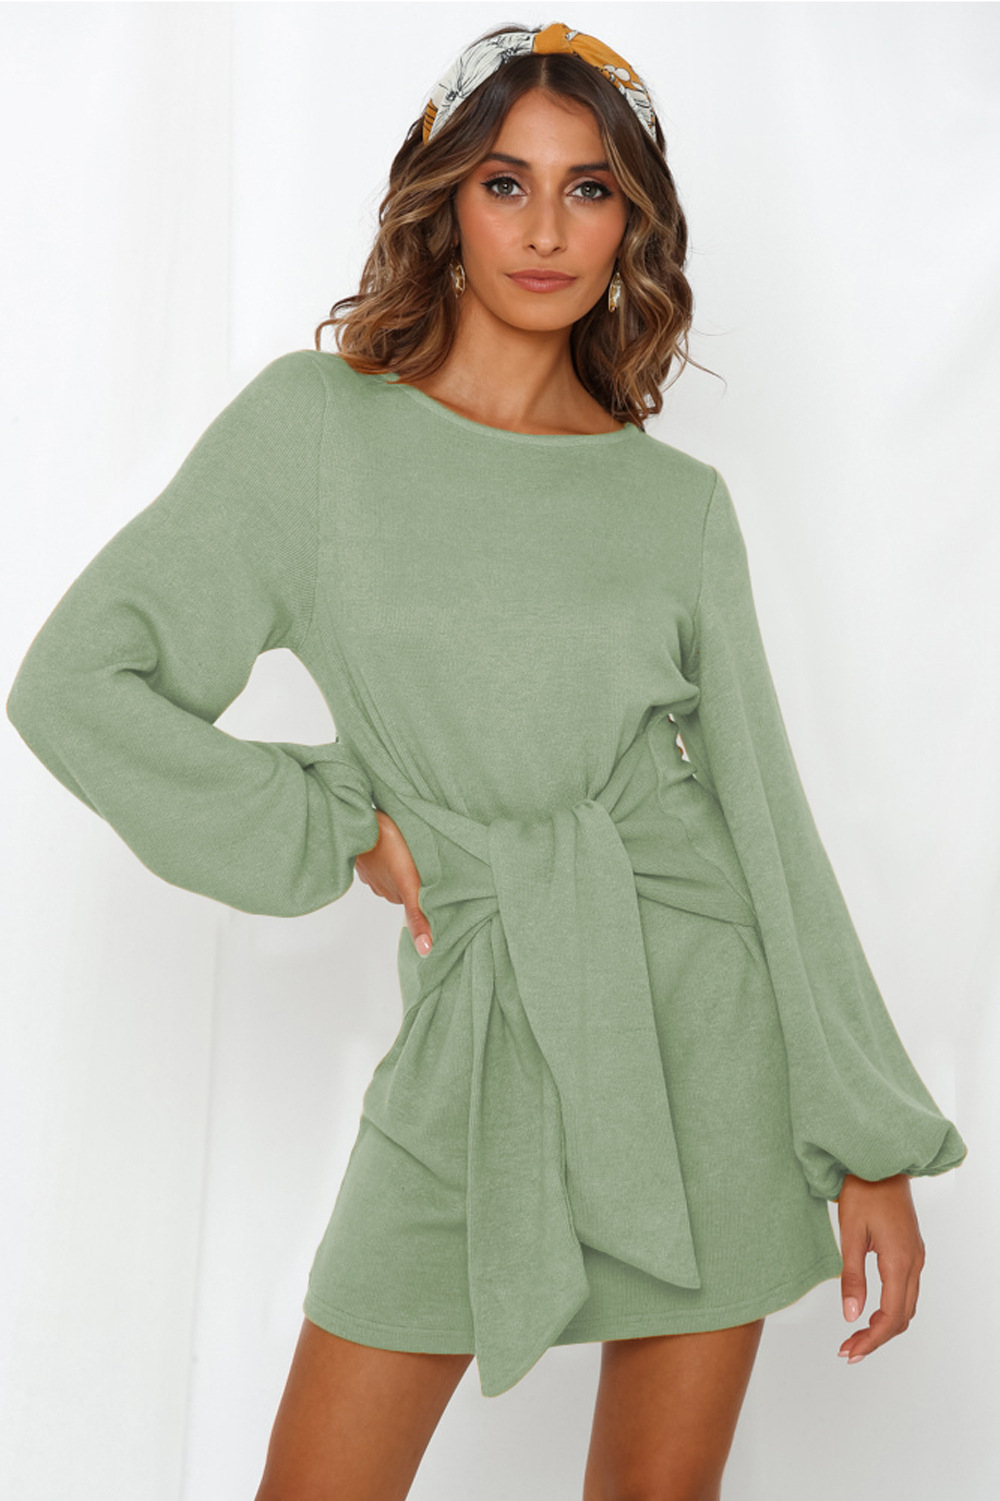 autumn and winter new women's loose lace long-sleeved grass green dress wholesale  NSDF1303